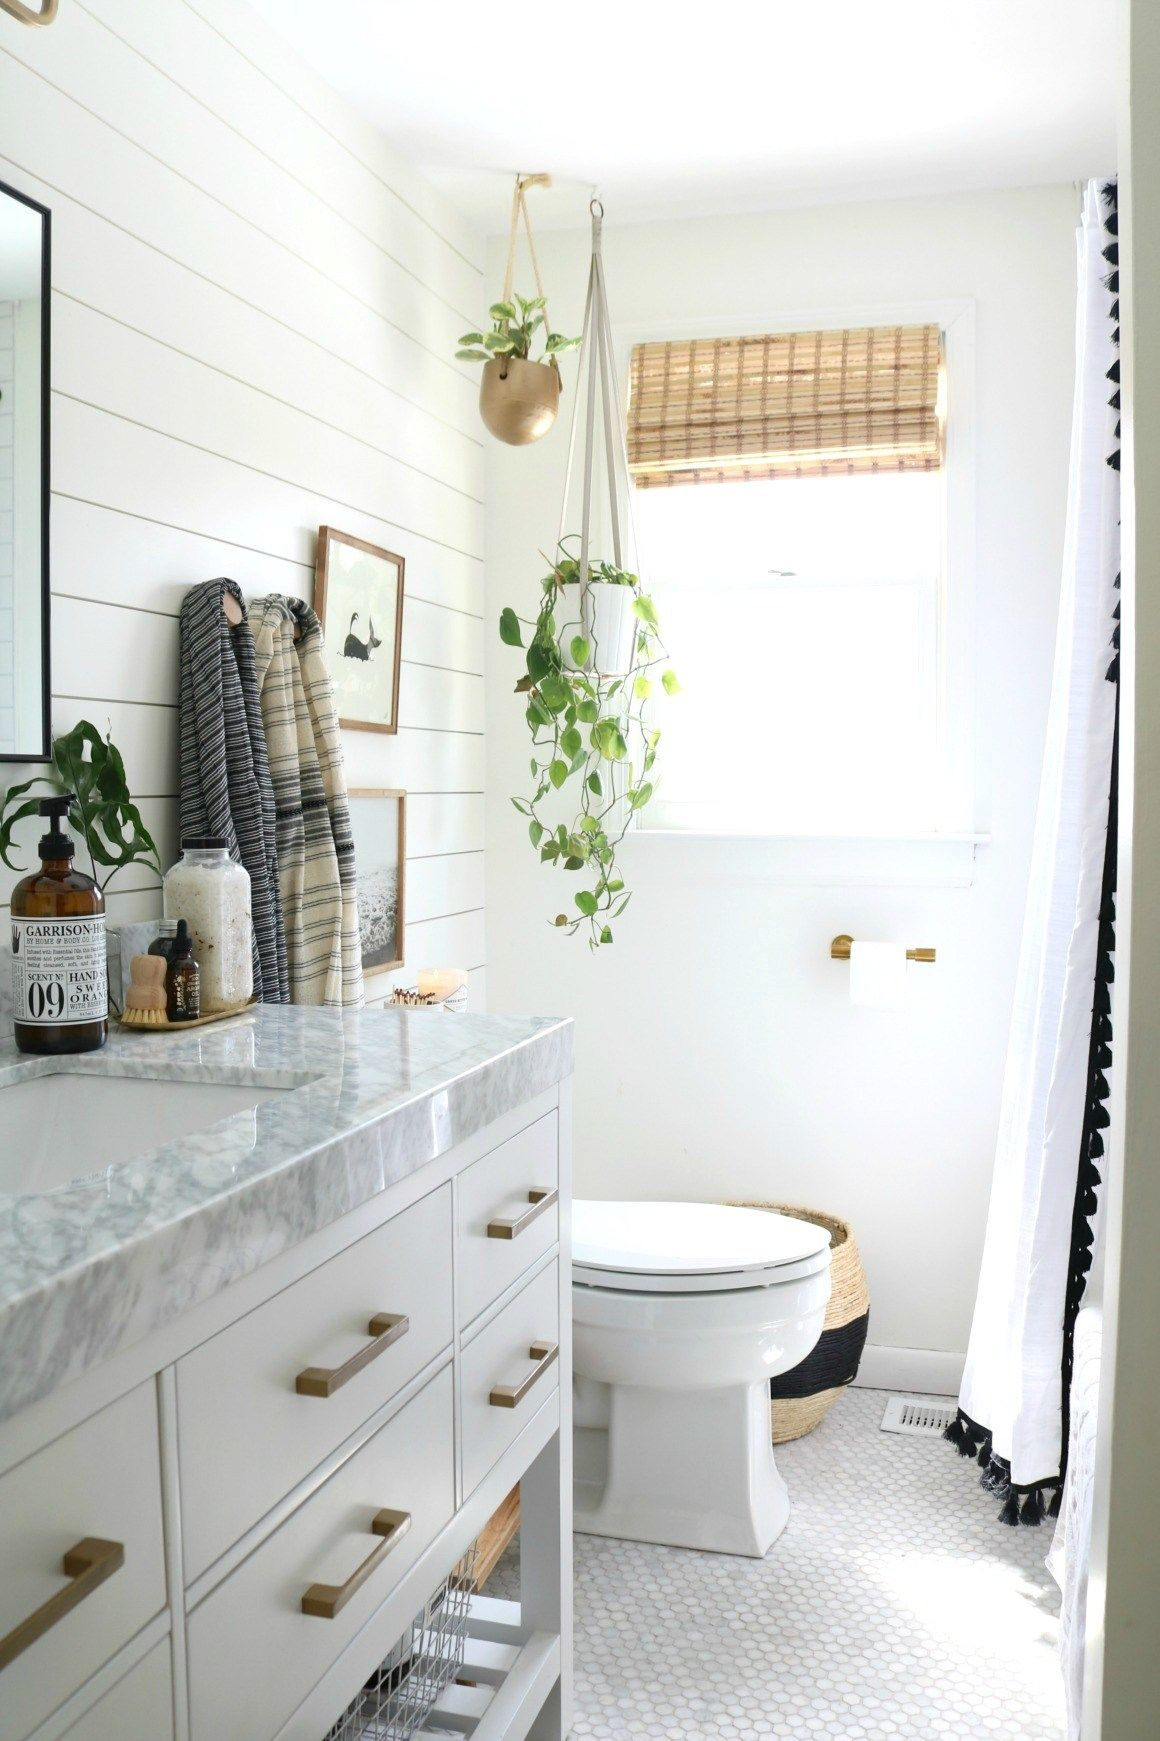 Affordable Bamboo Woven Shades And Fabric Roman Shades Ultimate Guide Upstairs Bathrooms Bathrooms Remodel Apartment Bathroom